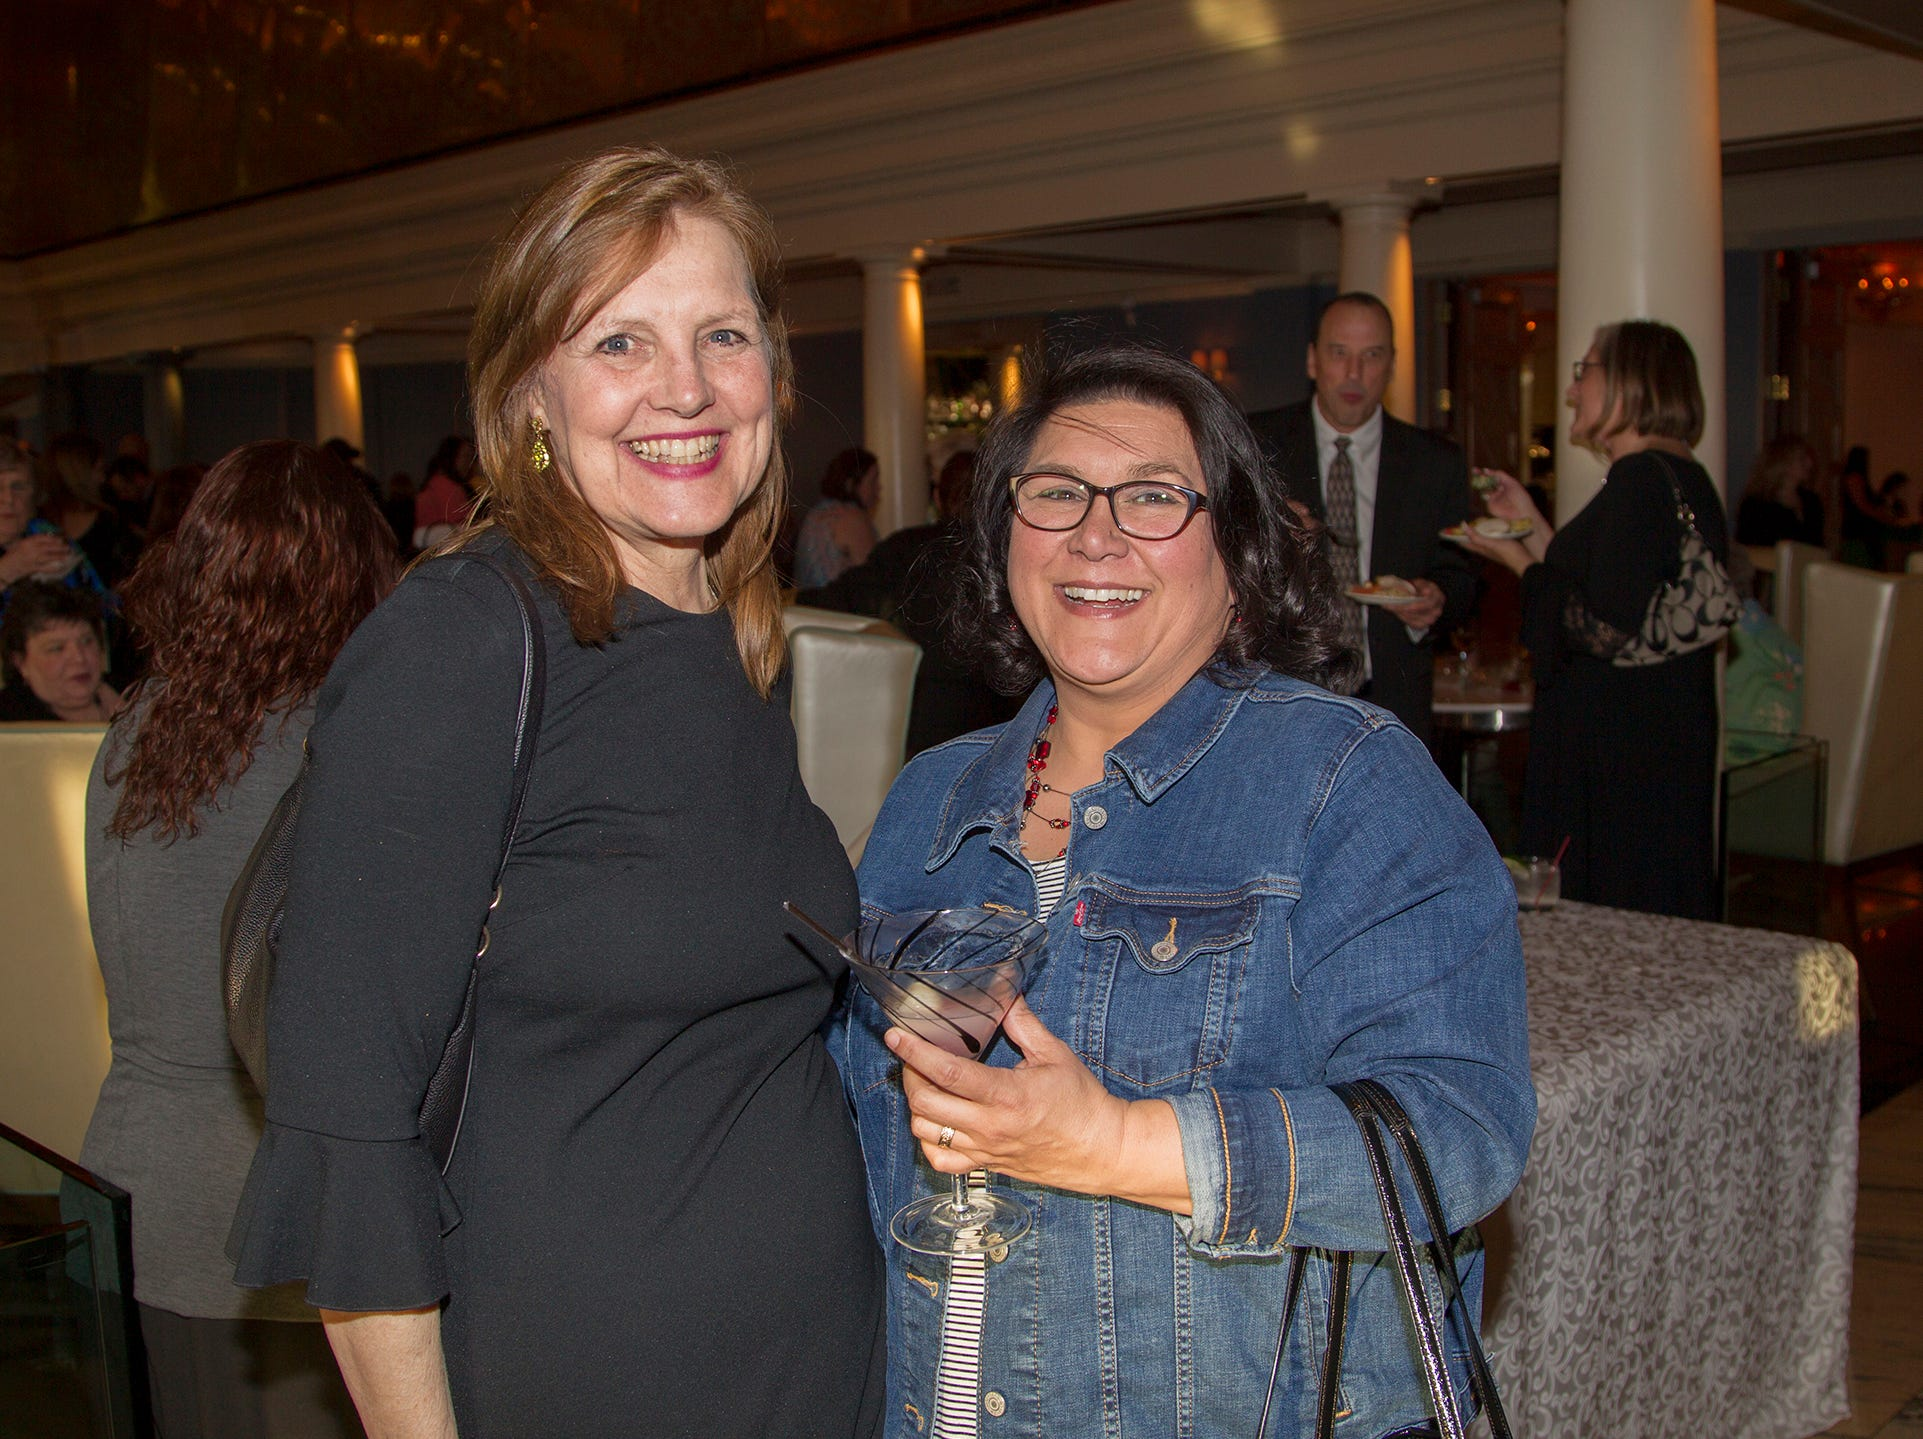 Cathy Ragnetti, Michelle Gelleispe. Girl Scouts of Northern New Jersey held its Women of Achievement 2019 at Westmount Country Club in Woodland Park. 04/04/2019